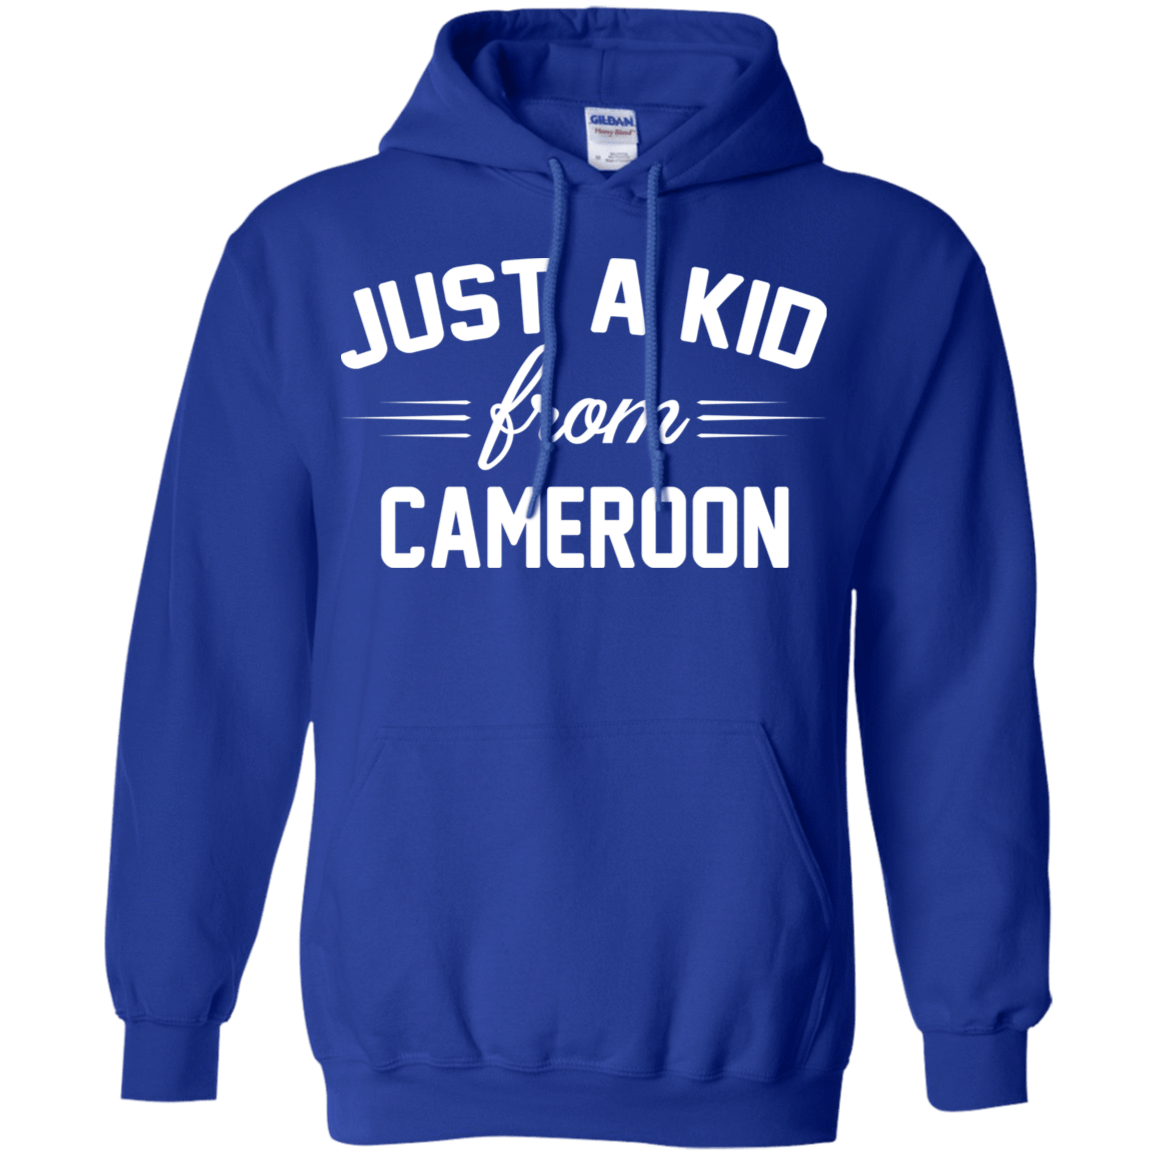 Just a Kid Store | Cameroon T-Shirts, Hoodie, Tank 541-4765-72092770-23175 - Tee Ript